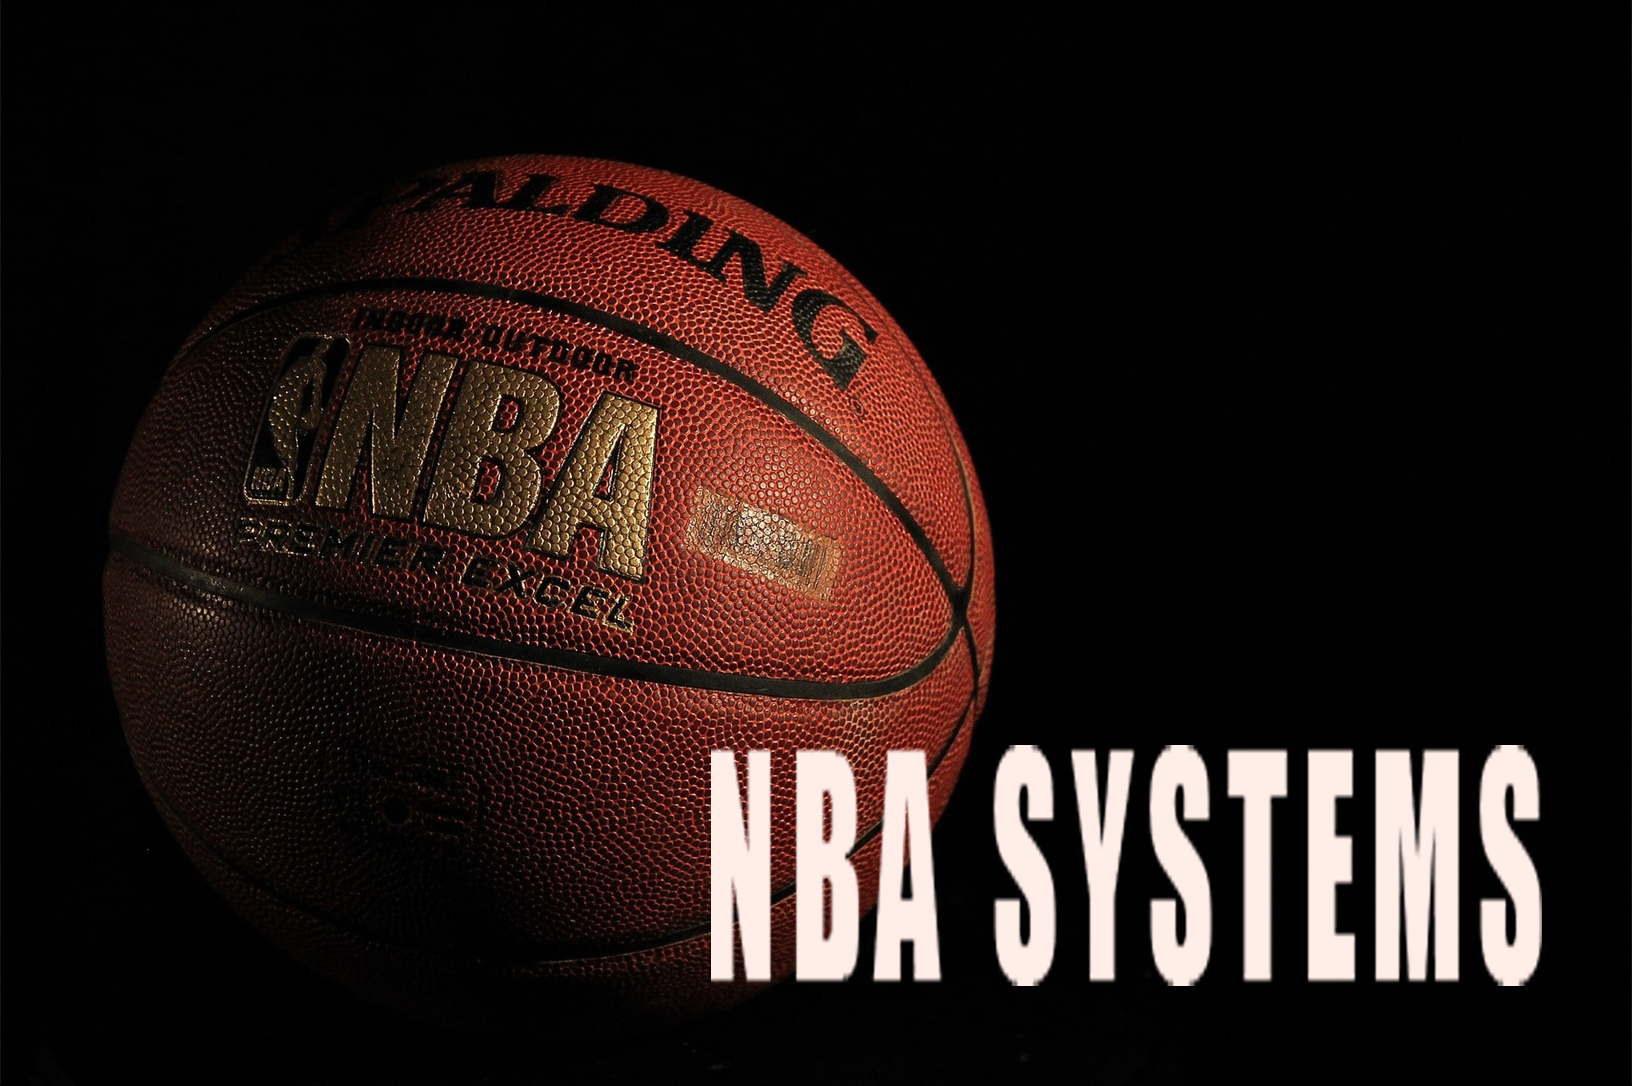 Own Every NBA System